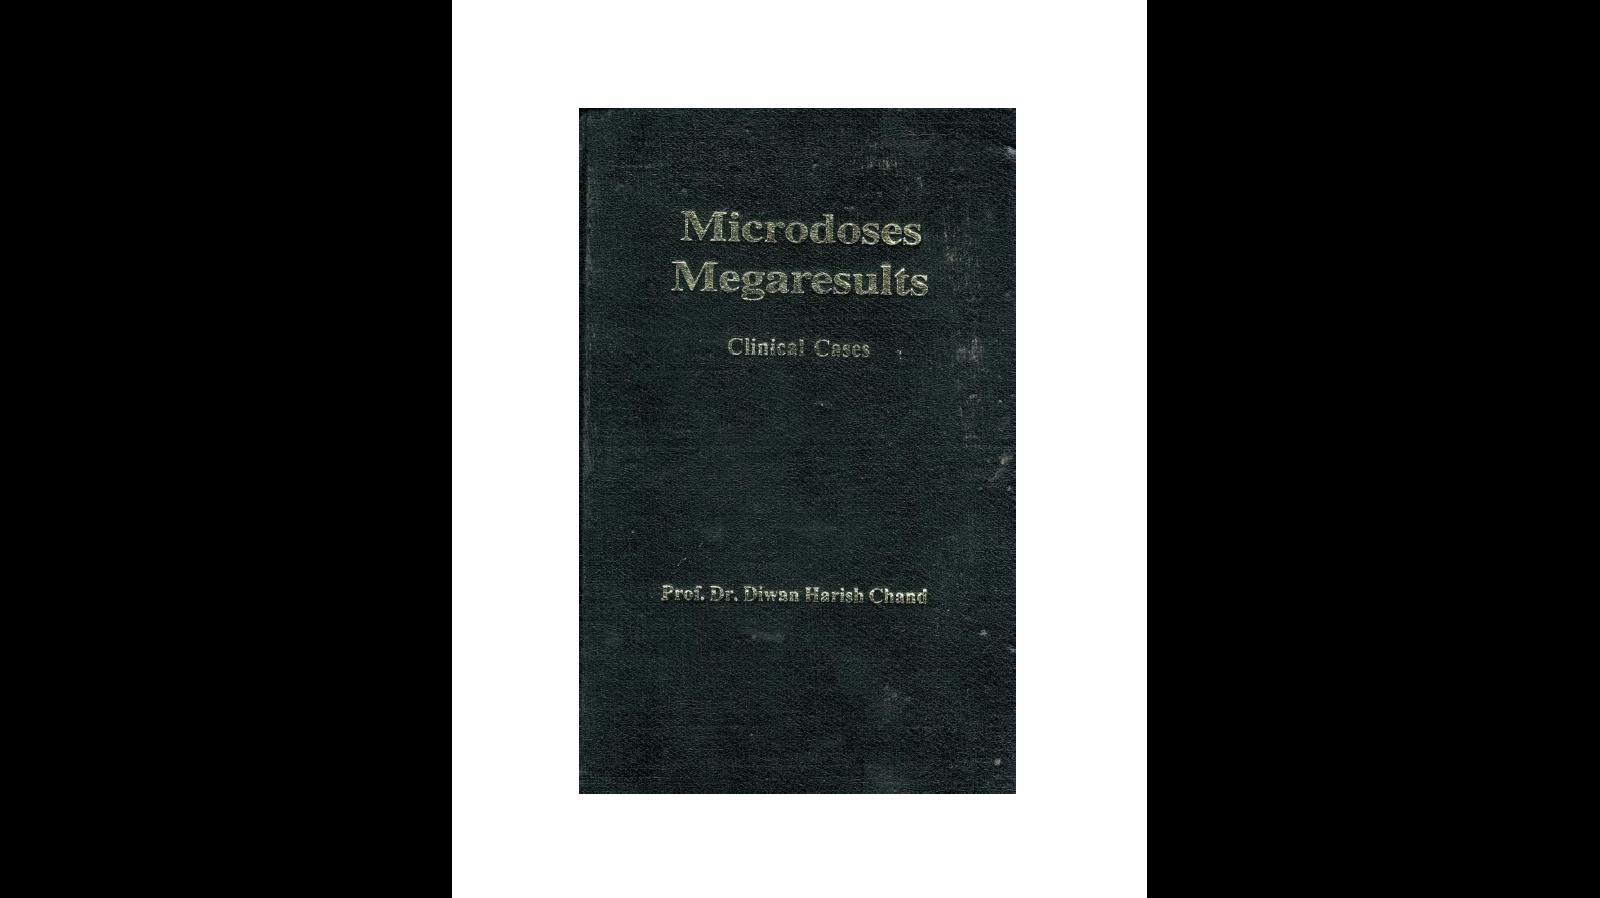 Microdoses Megaresults Clinical Cases (A selection from 50